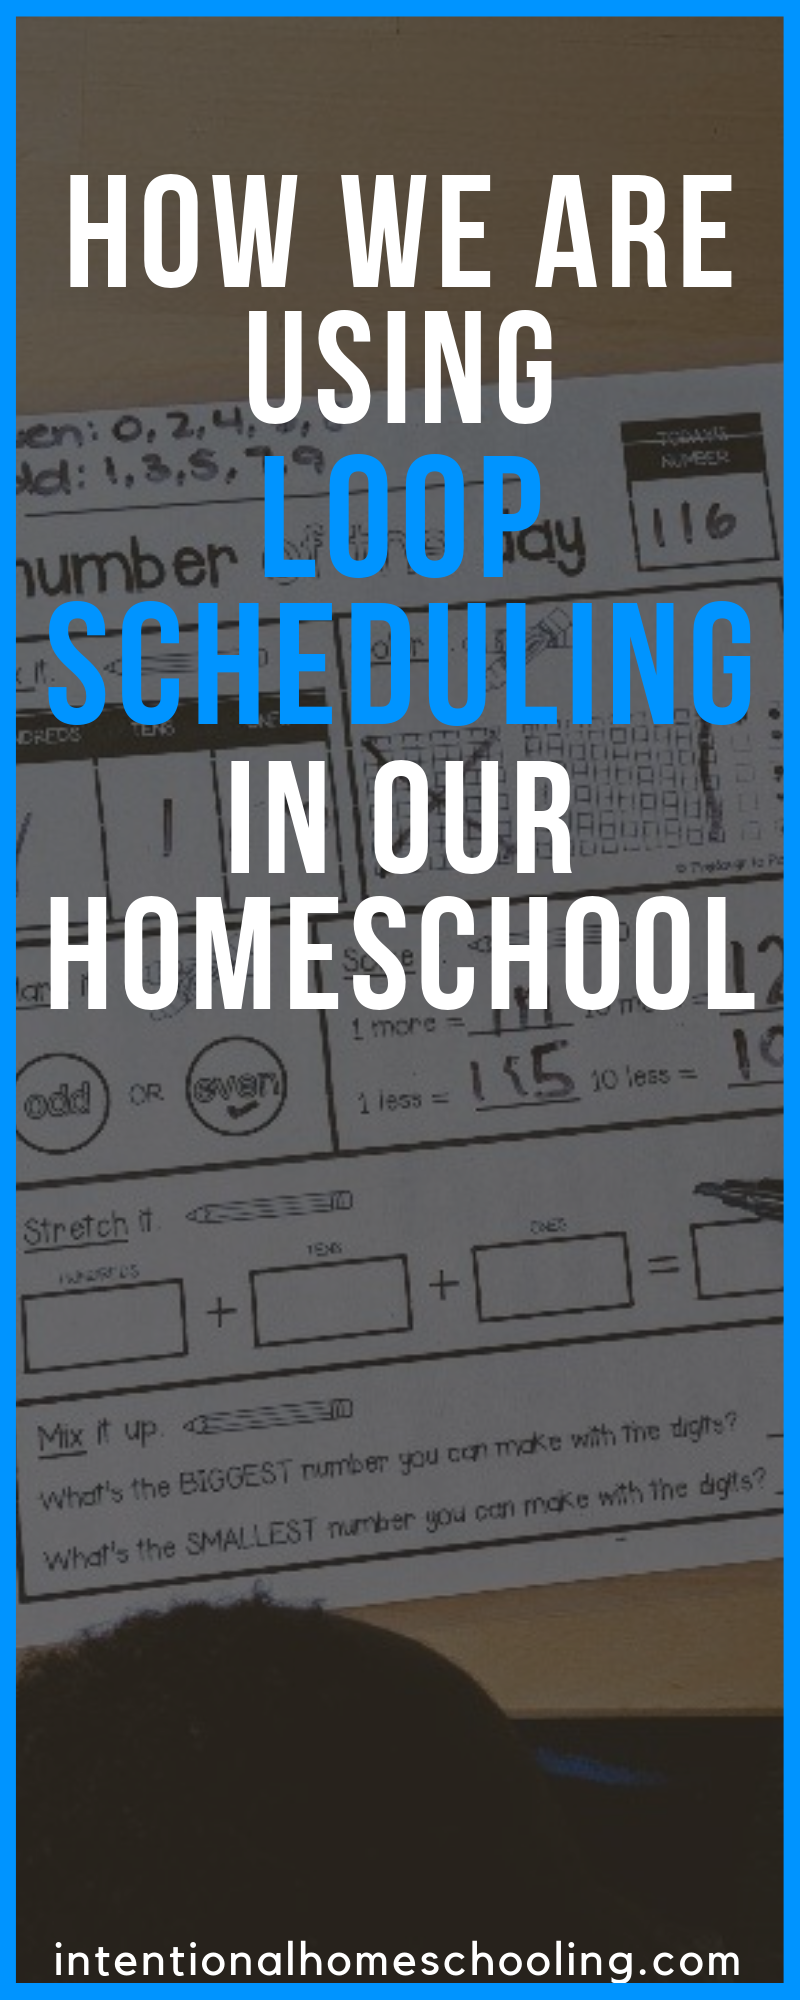 How we use Loop Scheduling in our homeschool - what it is and how it fits into our homeschool rhythm